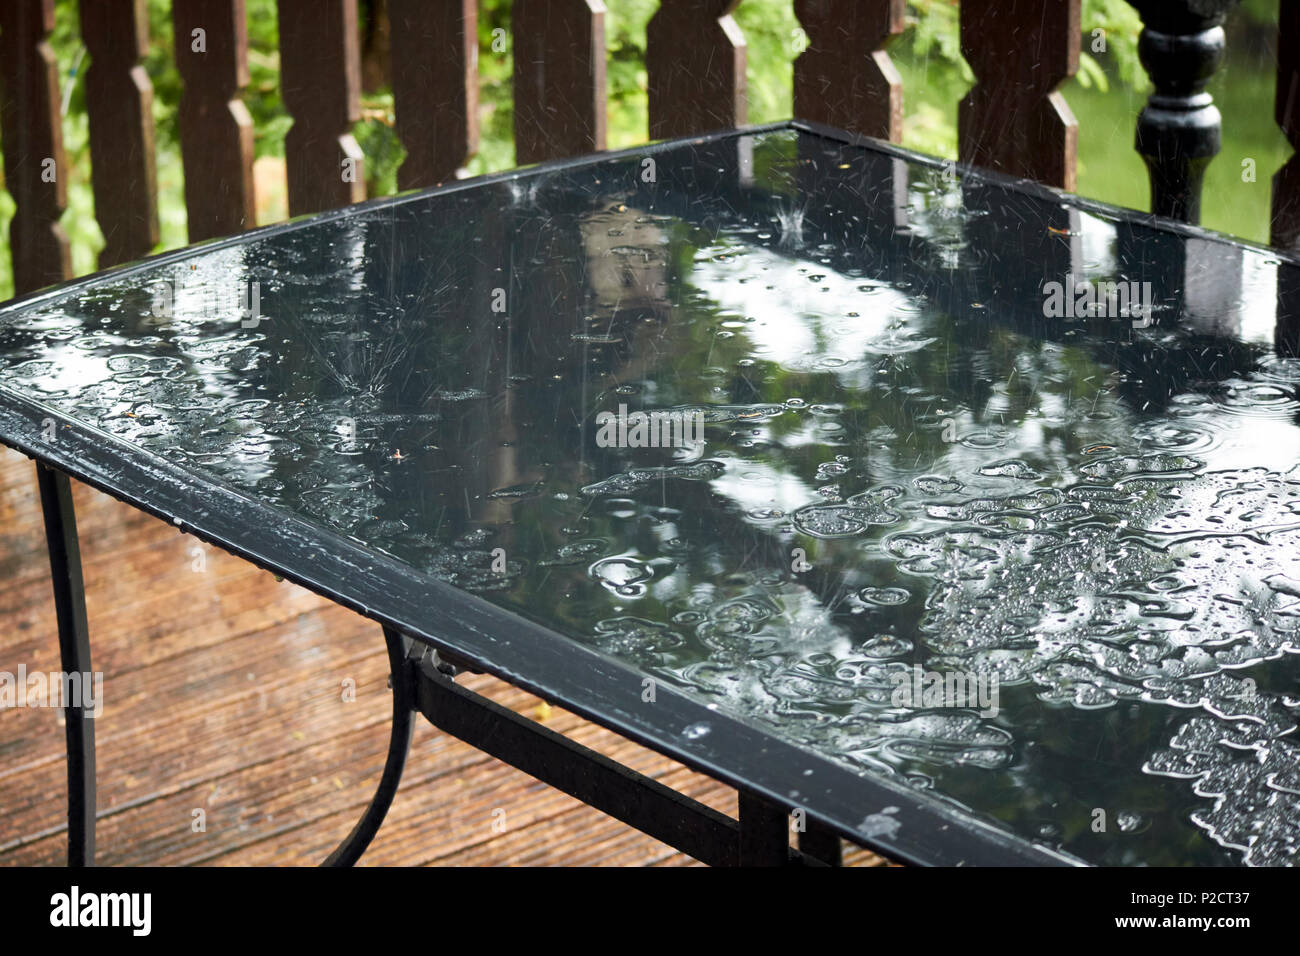 rain bouncing off a glass garden table during wet summer weather in the uk - Stock Image